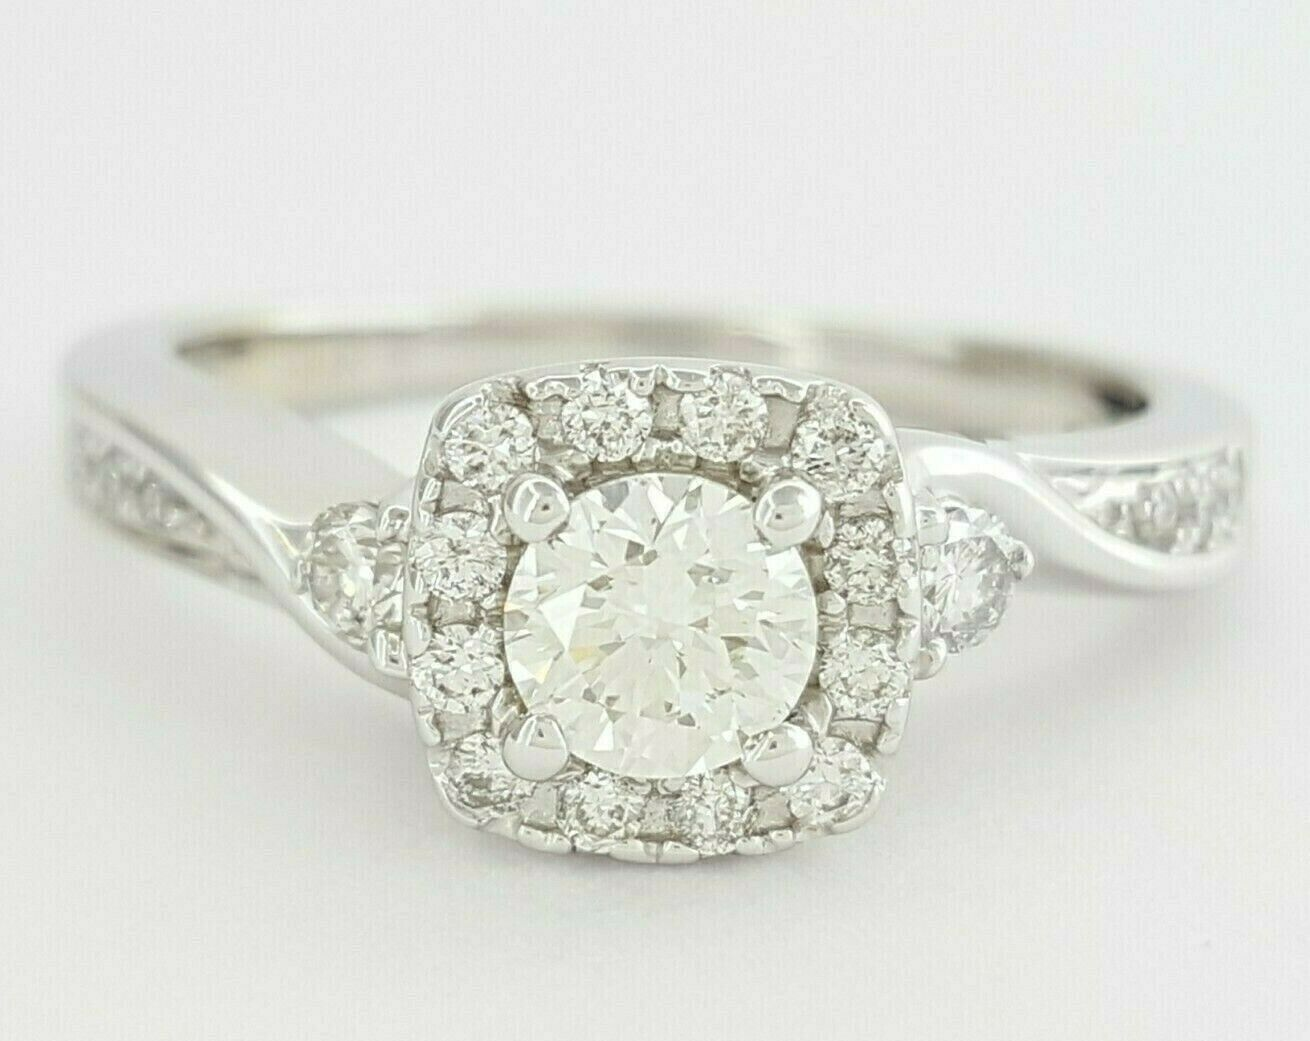 0.63 ct 14K White gold Round Brilliant Cut Diamond Halo Engagement Ring